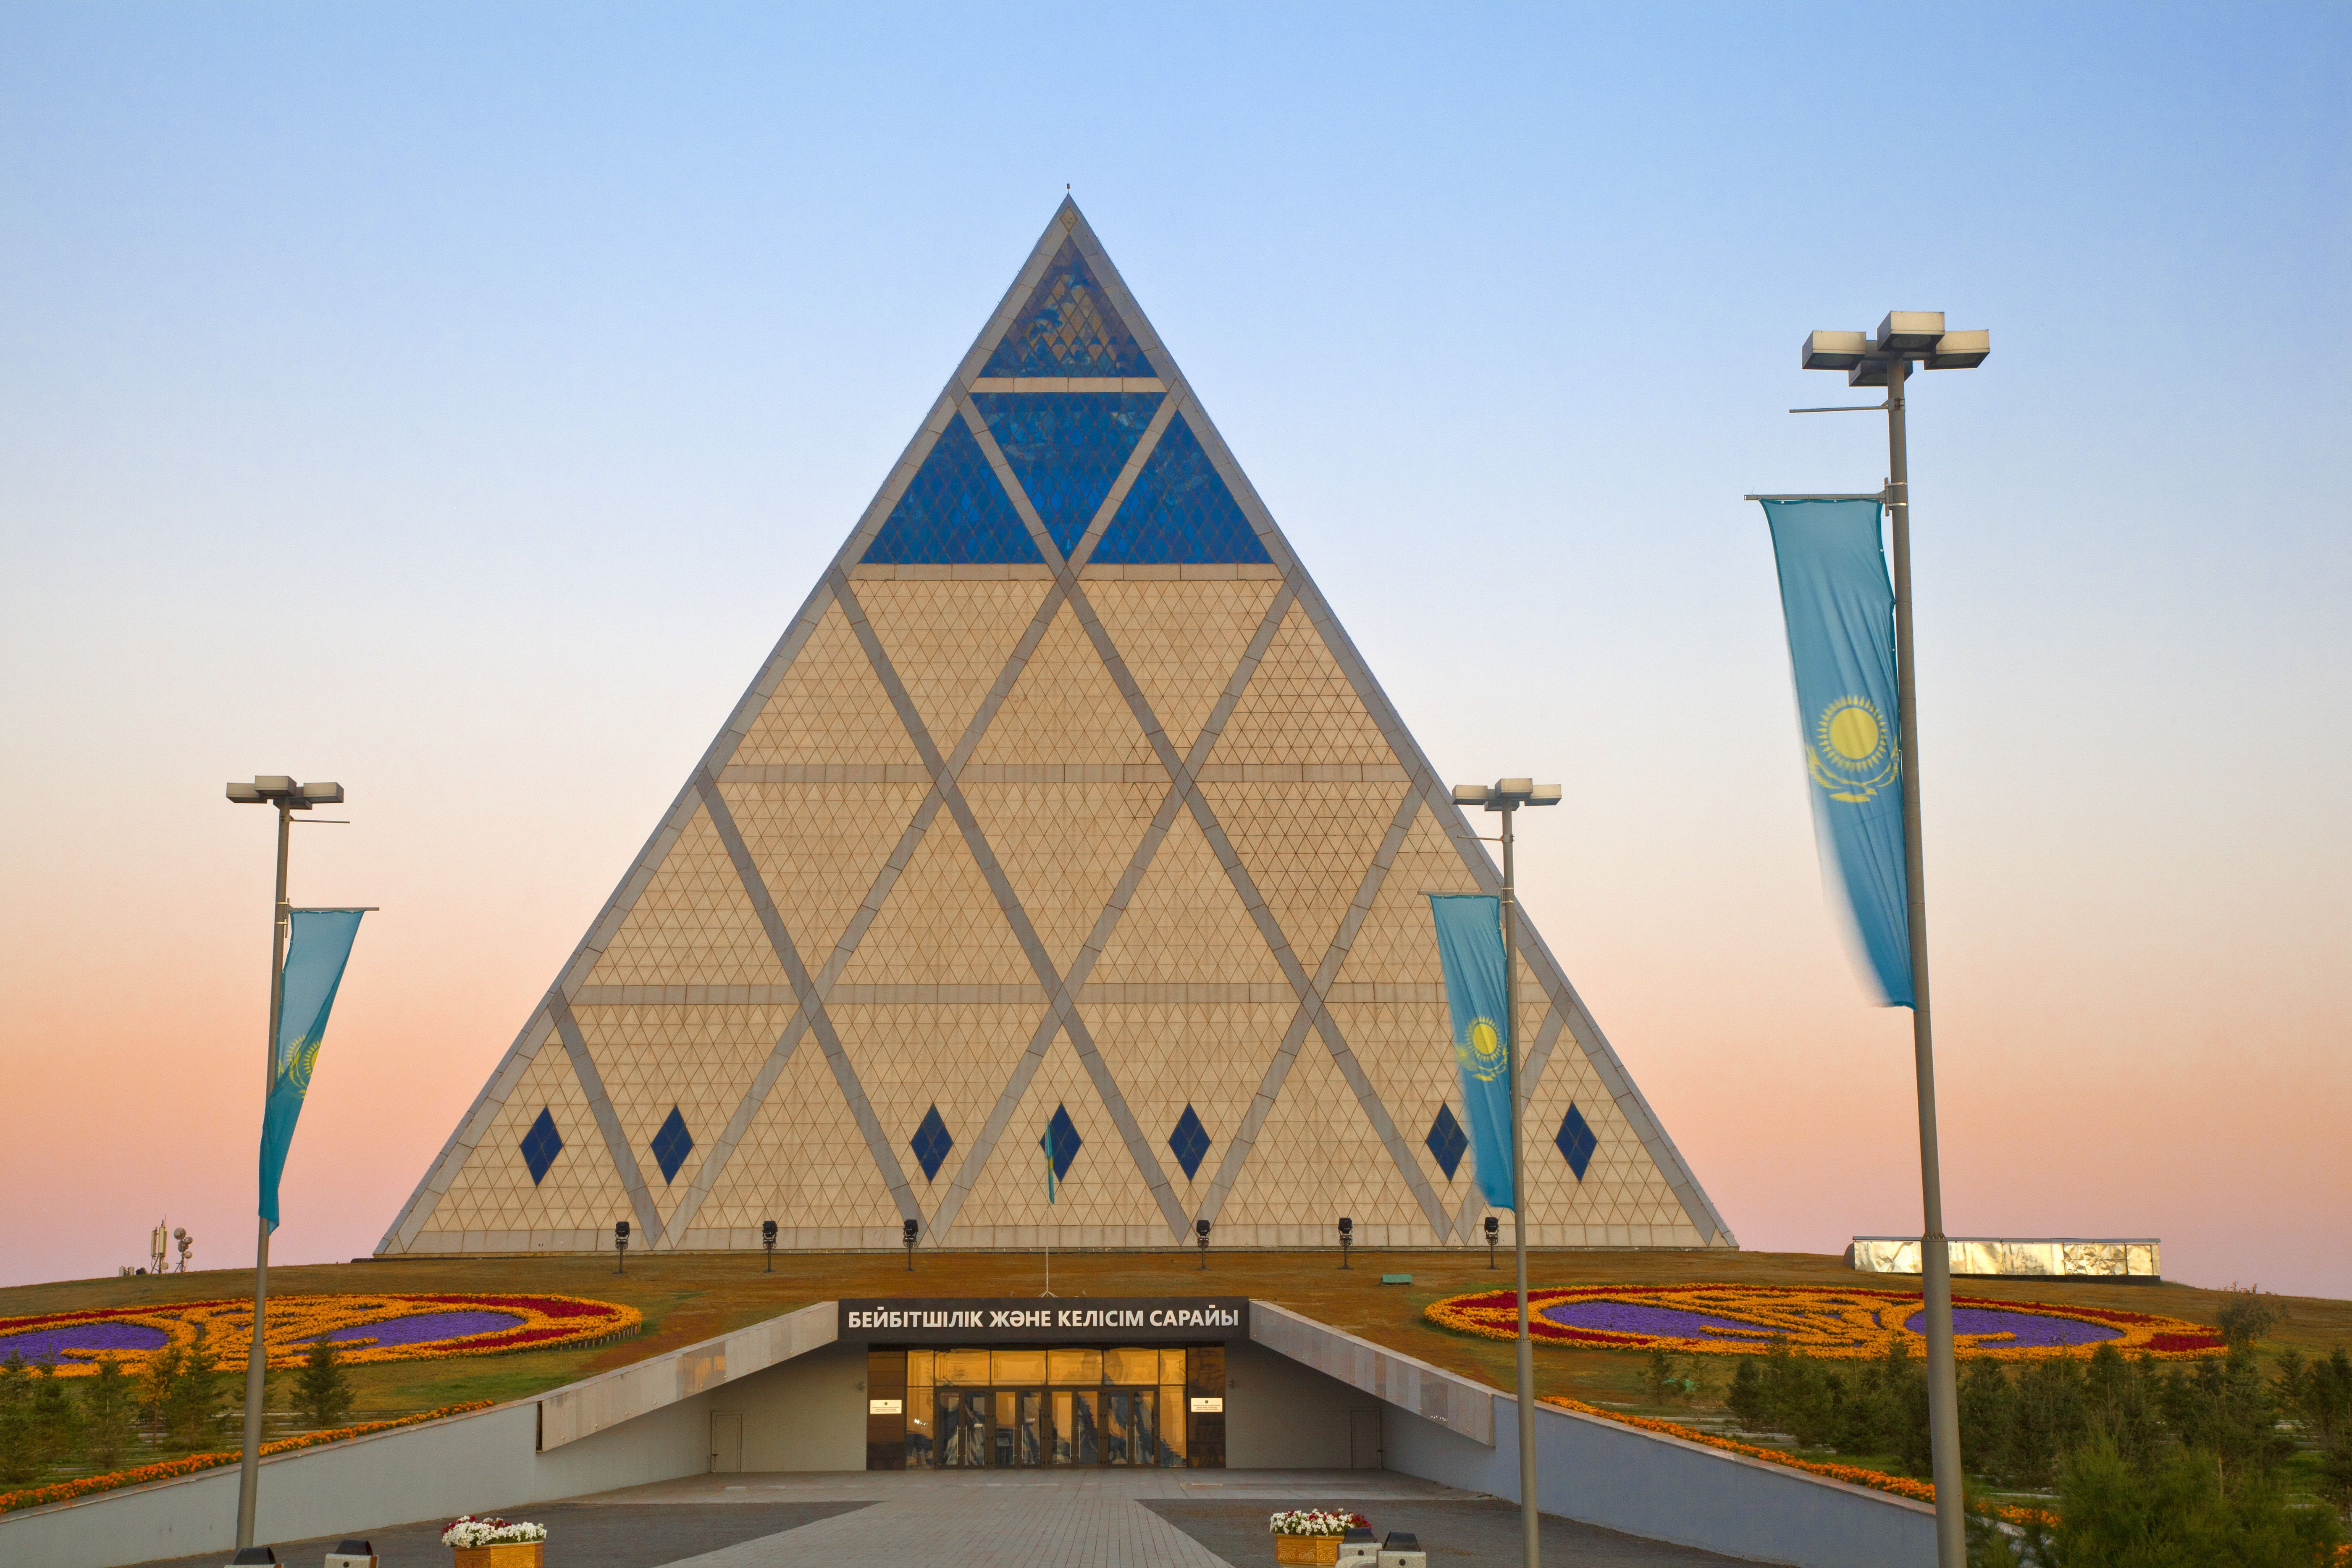 one face of a postmodernist pyramid building